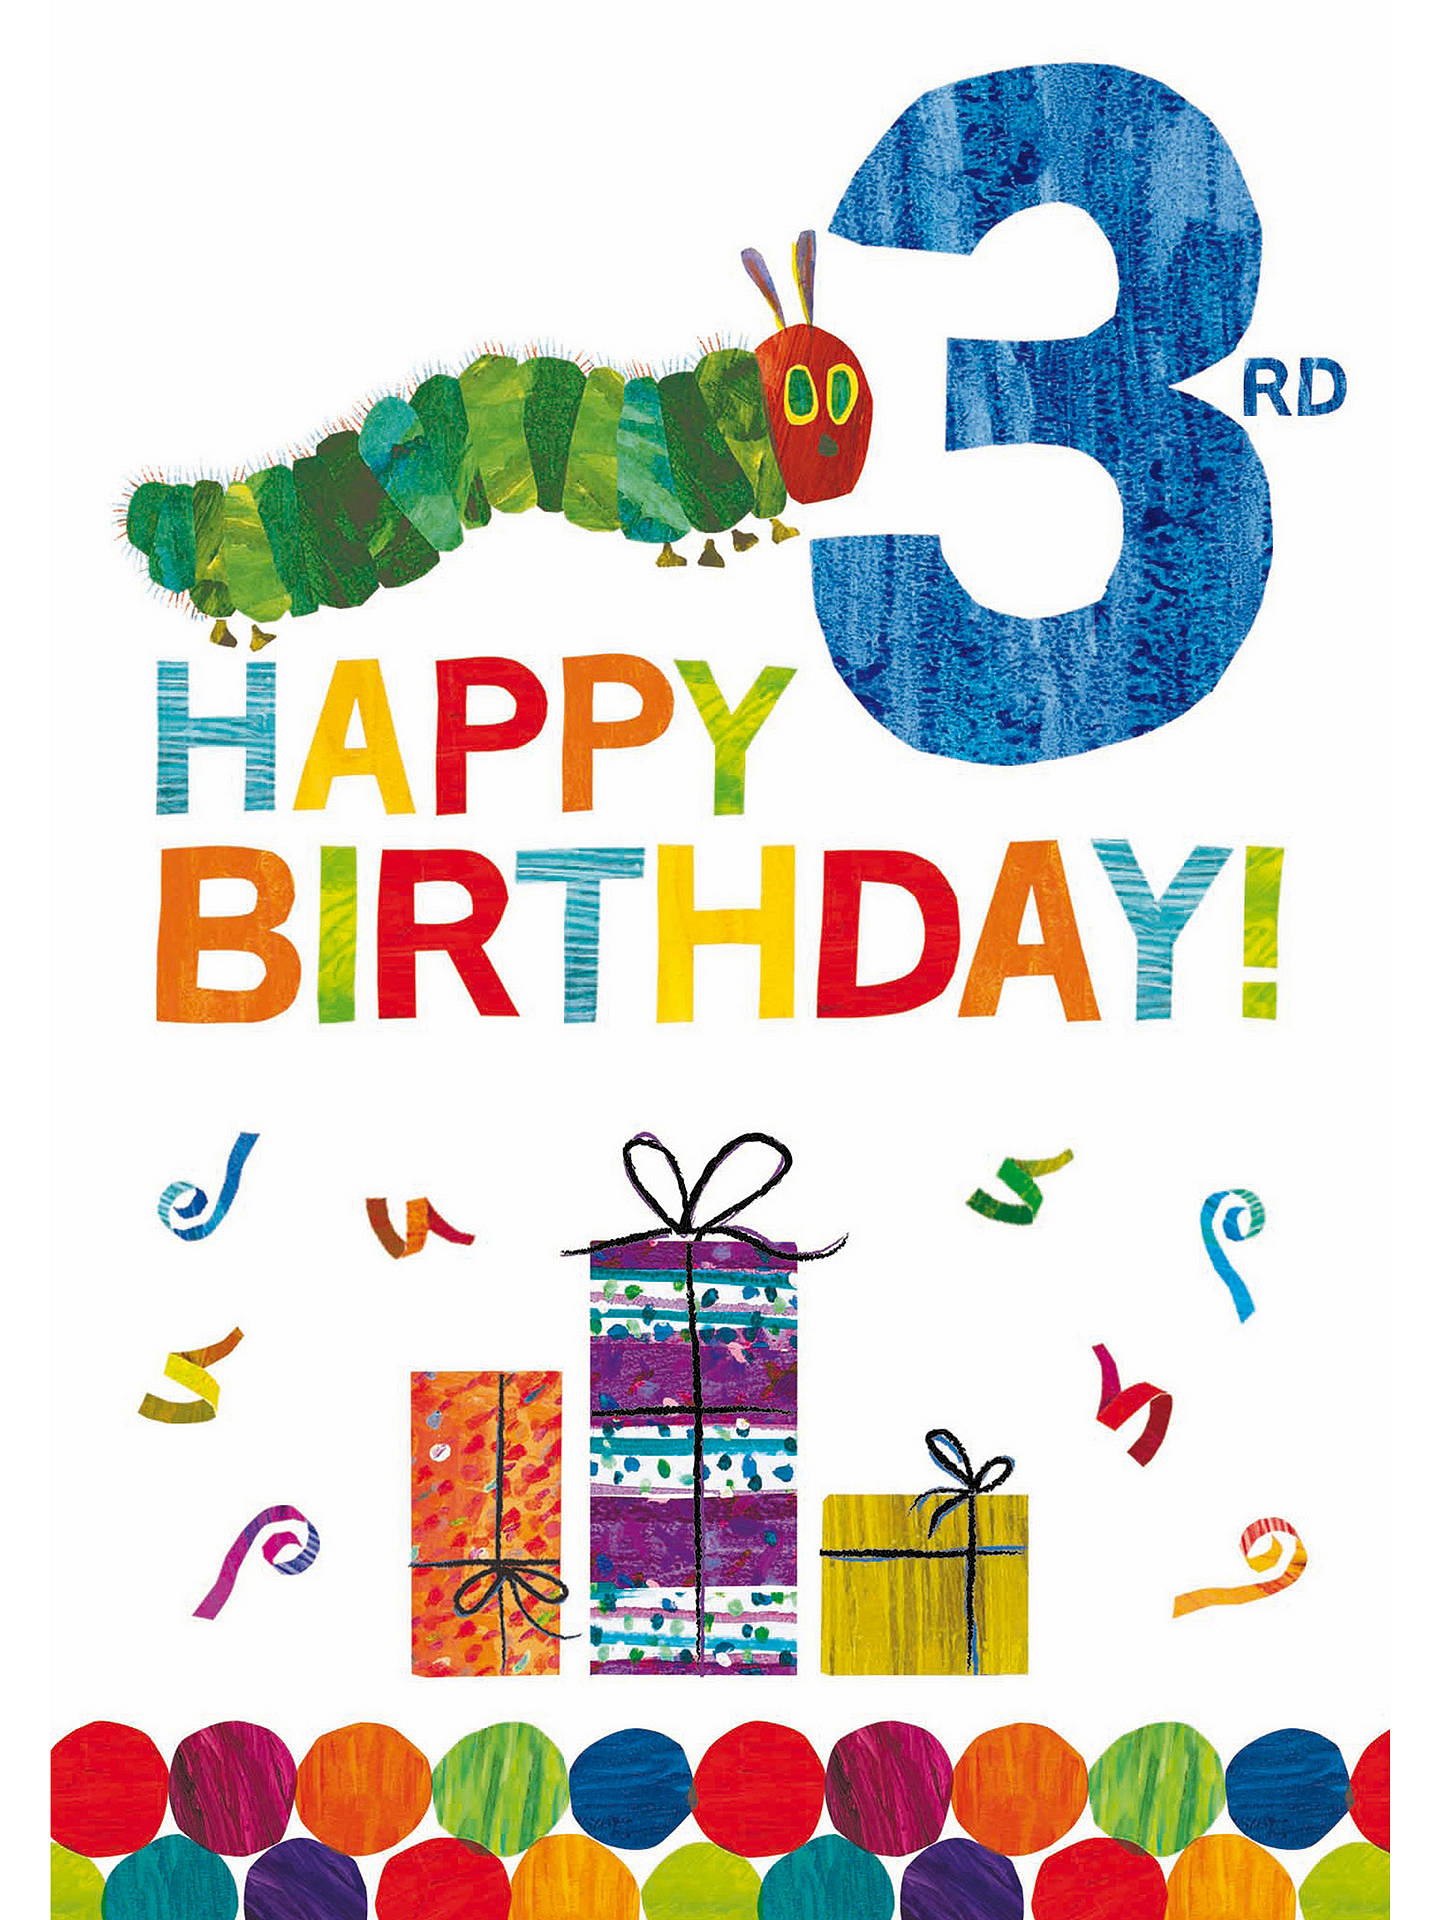 BuyWoodmansterne Candles 3rd Birthday Card Online At Johnlewis